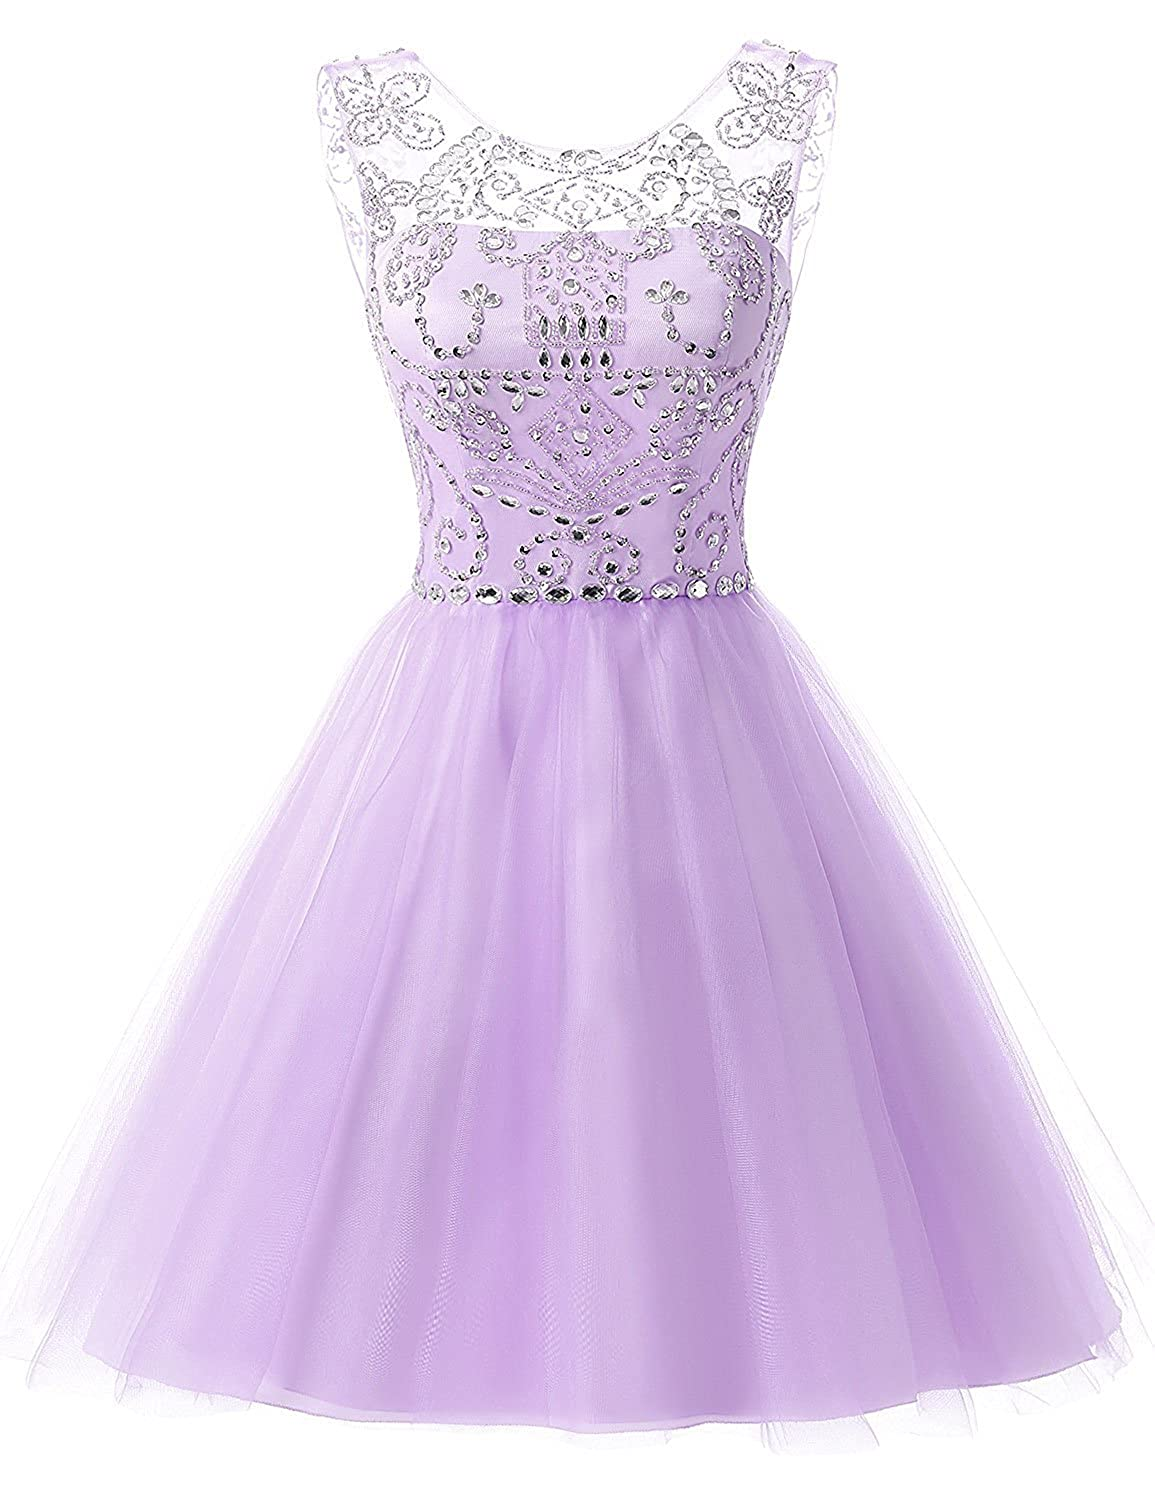 133purplec Sarahbridal Women's Short Tulle Beading Homecoming Dresses 2019 Prom Party Gowns